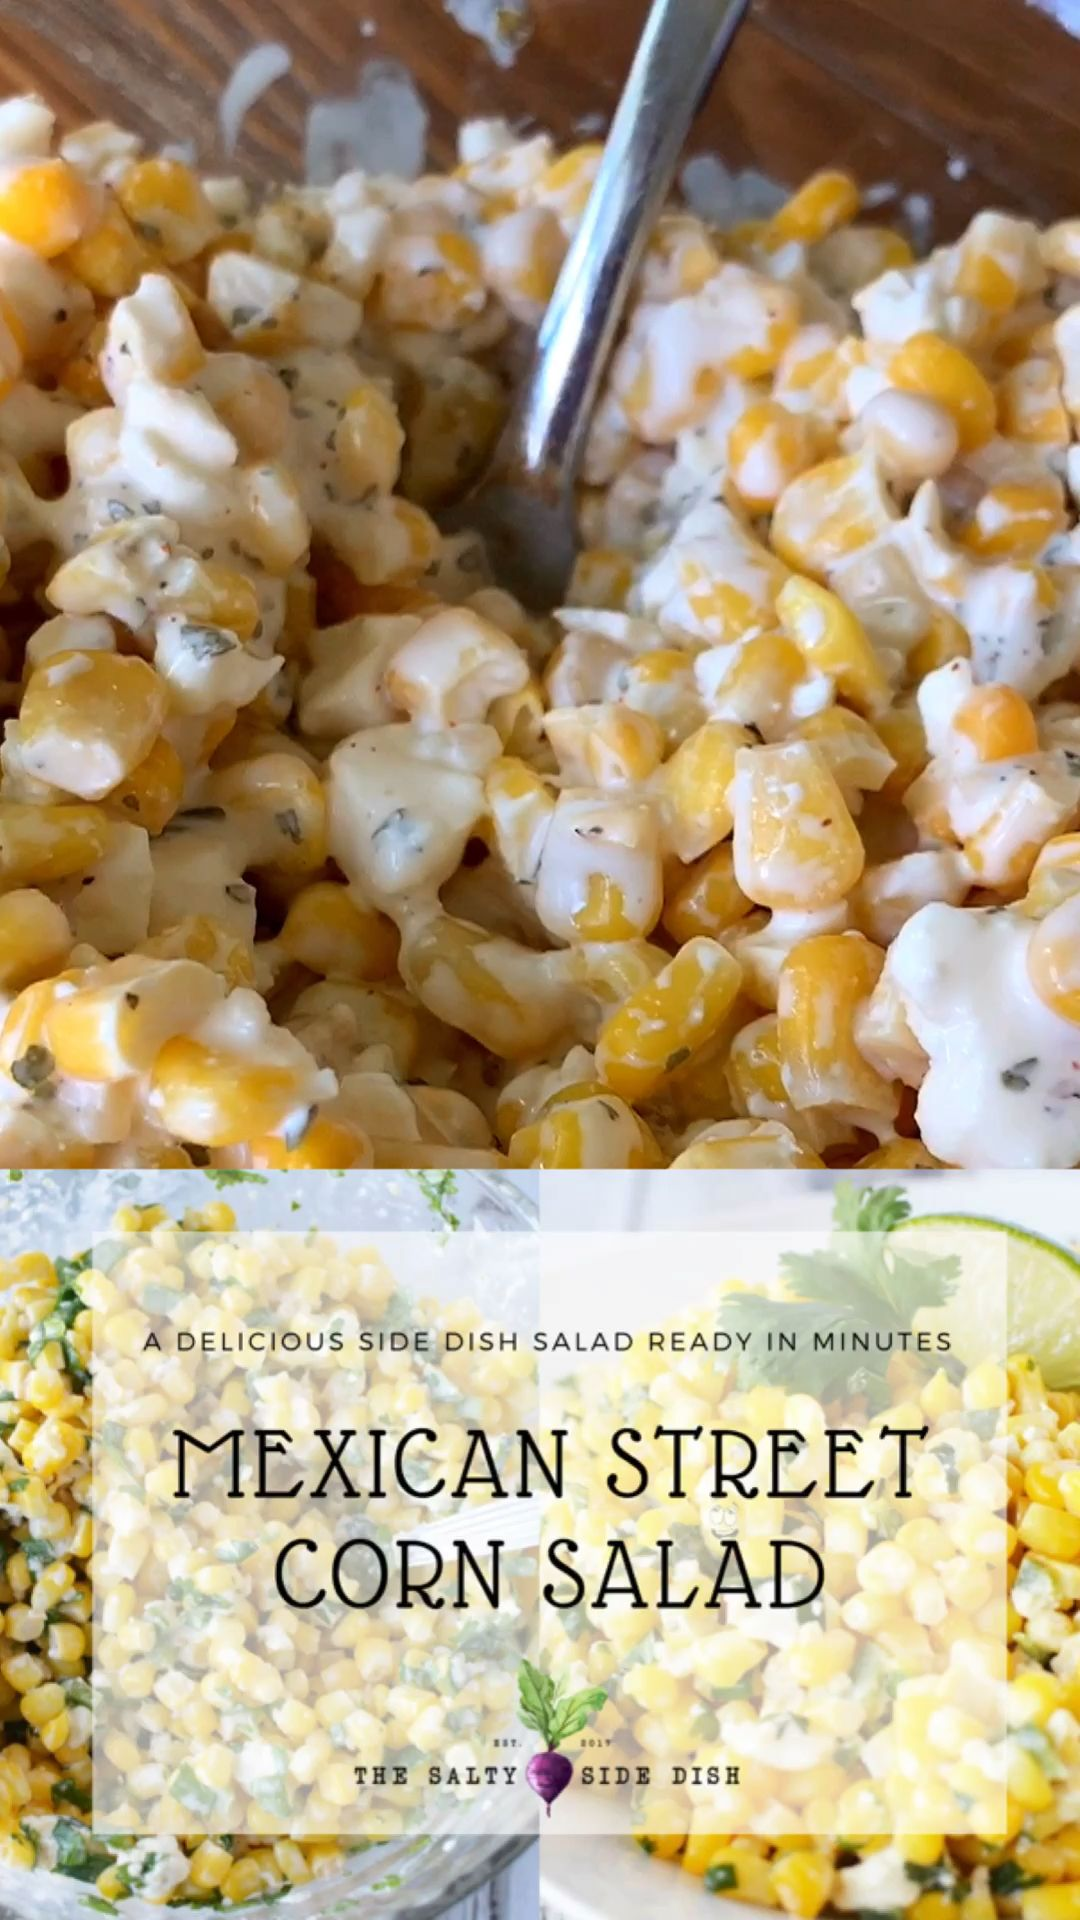 Mexican Street Corn Salad #easymexicanfoodrecipes